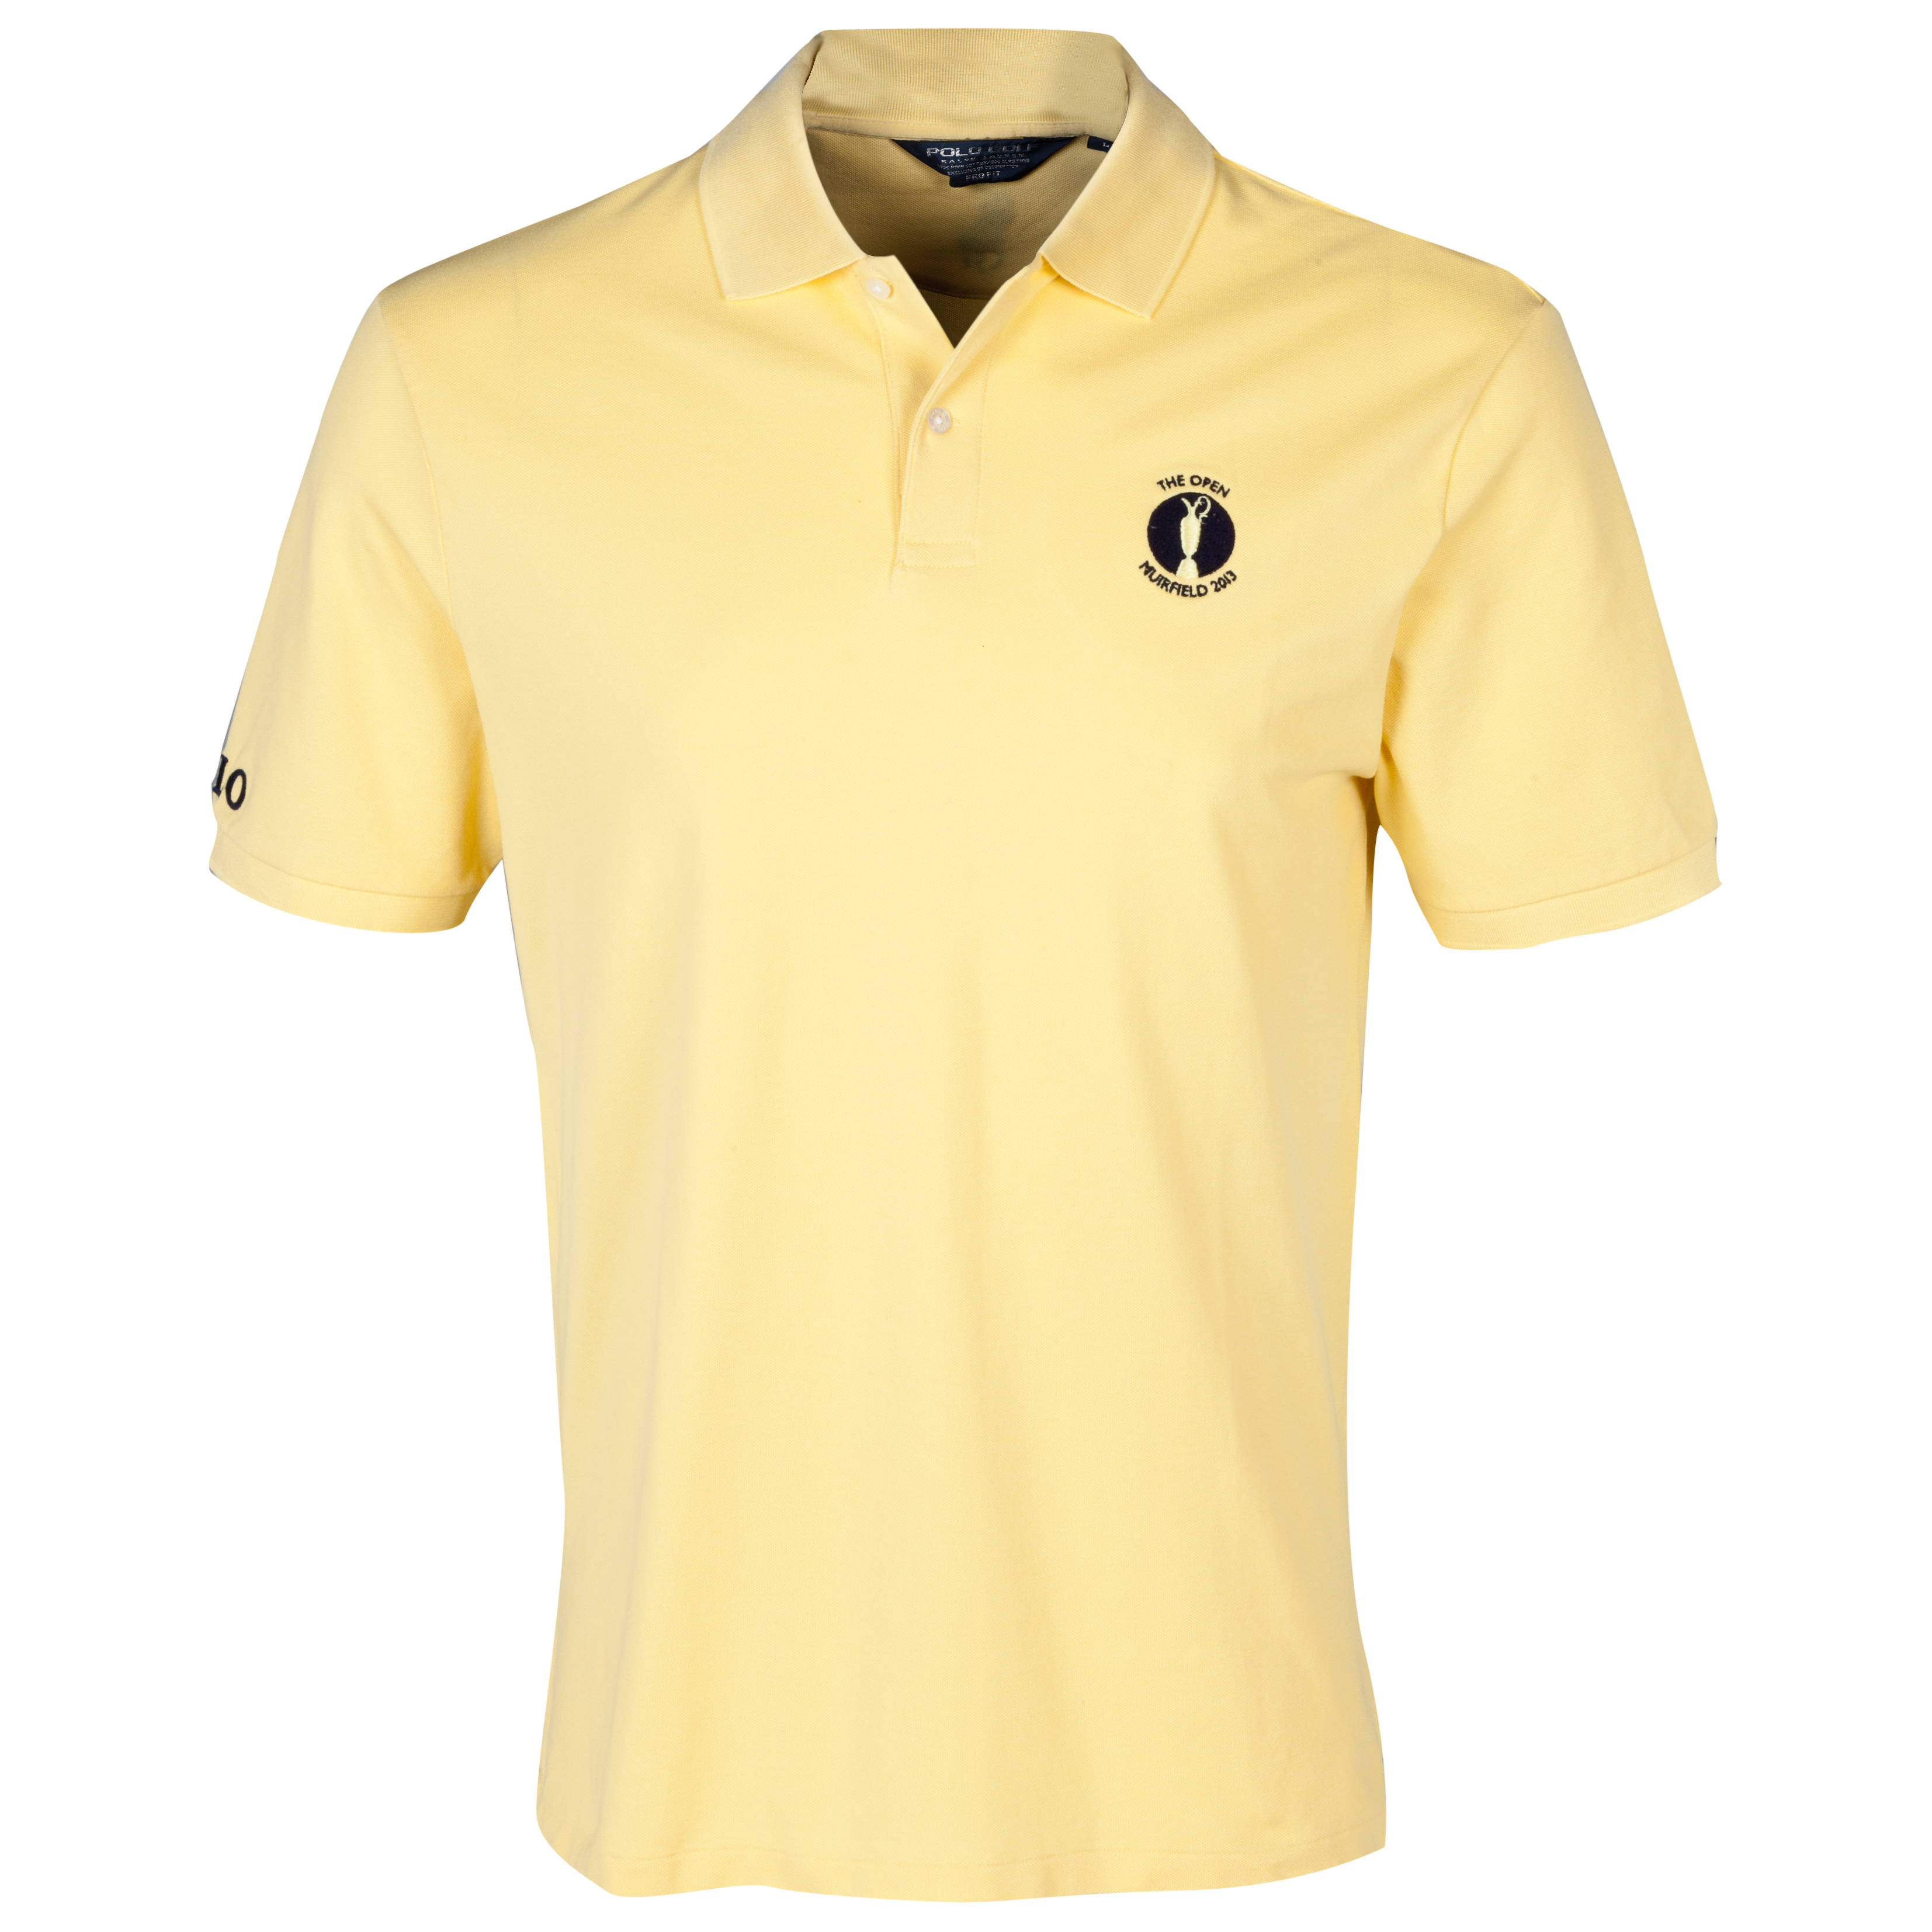 The Open Championship 2013 Muirfield Polo Ralph Lauren Solid Polo Yellow